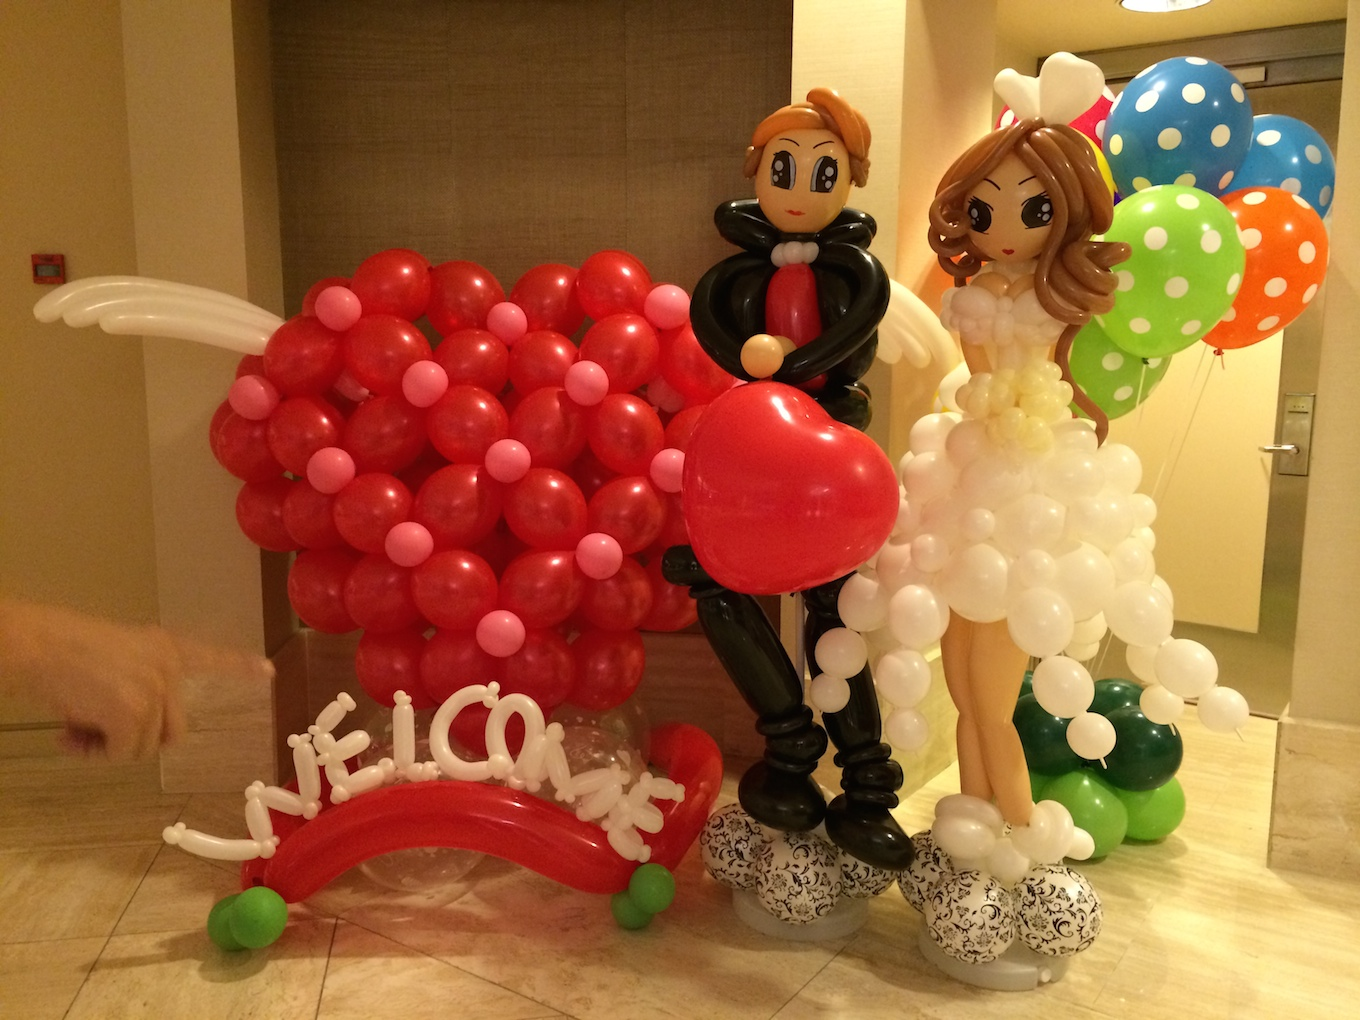 Weddings instant photobooths balloon decorations wedding for Balloon decoration ideas for weddings